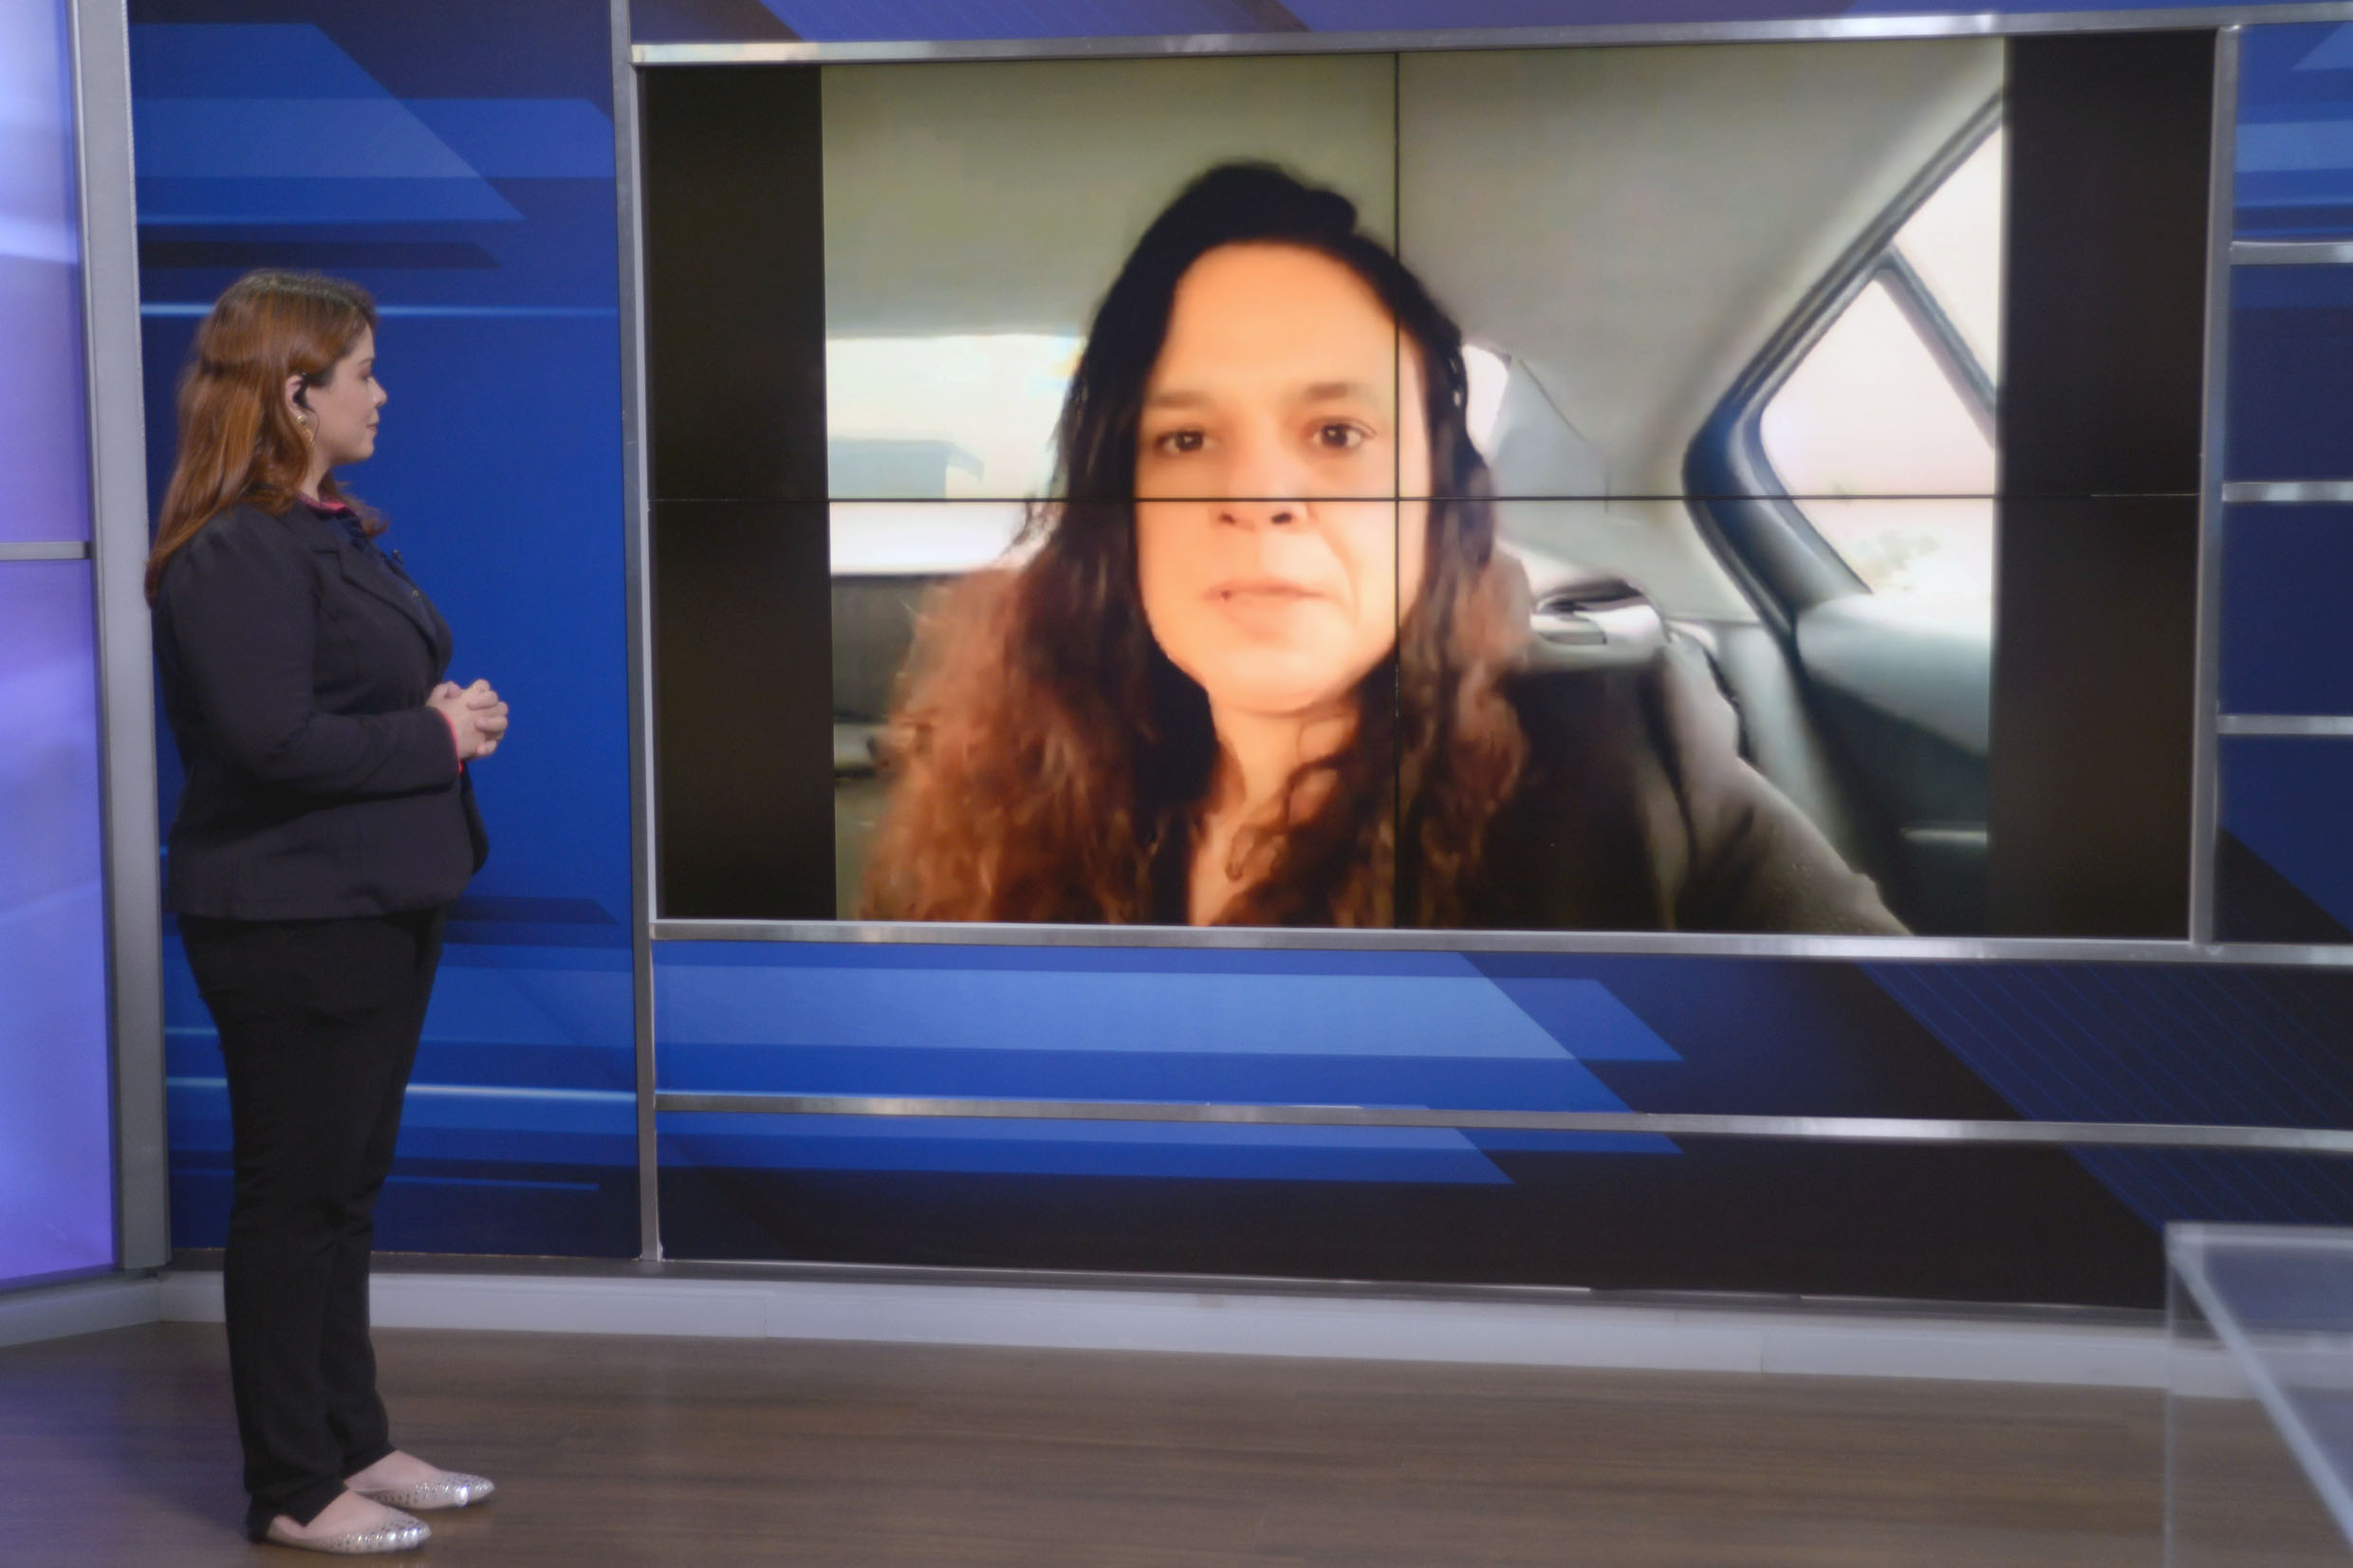 Janaina Paschoal na Tribuna Virtual<a style='float:right' href='https://www3.al.sp.gov.br/repositorio/noticia/N-06-2021/fg268601.jpg' target=_blank><img src='/_img/material-file-download-white.png' width='14px' alt='Clique para baixar a imagem'></a>